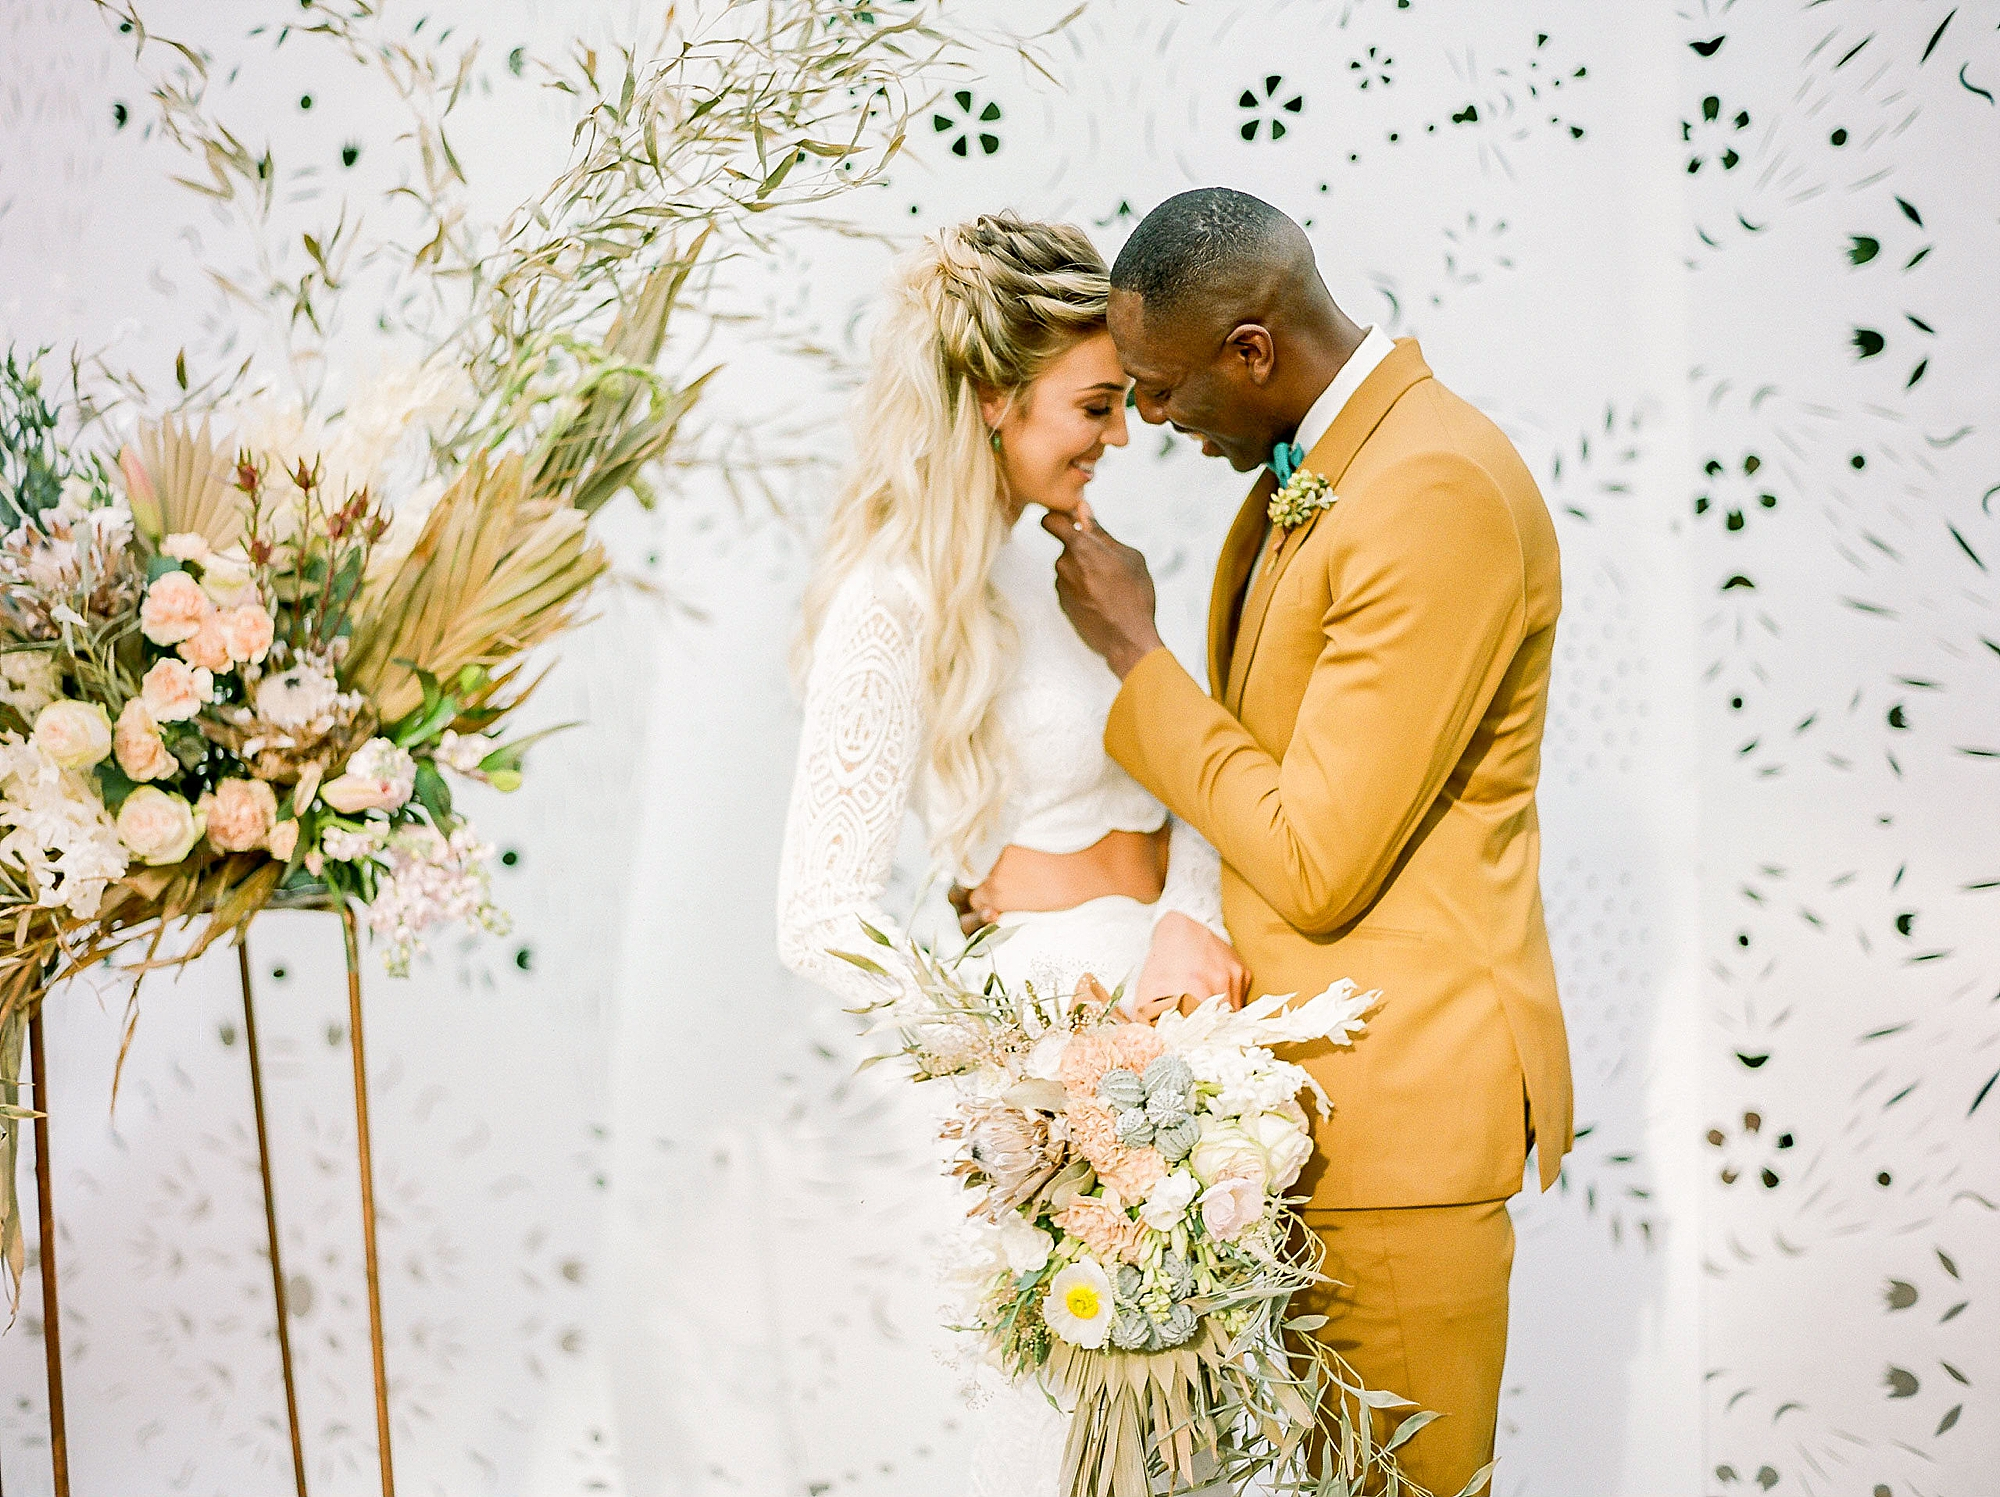 Colorful and Vibrant Wedding Photography at Fairmount Horticultural Center by Magdalena Studios 0026